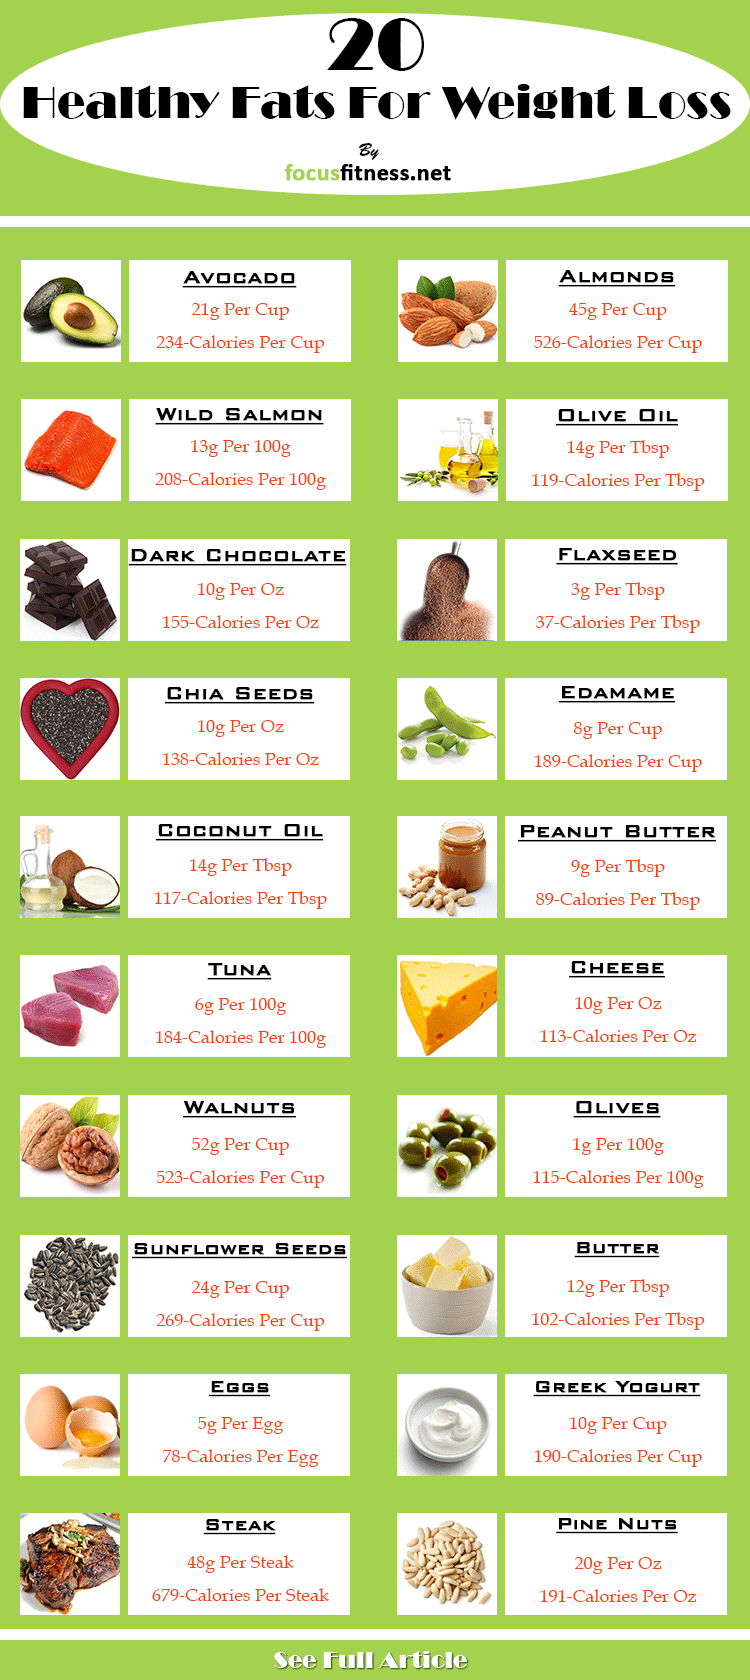 Healthy Fats and Weight Loss Healthy Fats and Weight Loss new pictures